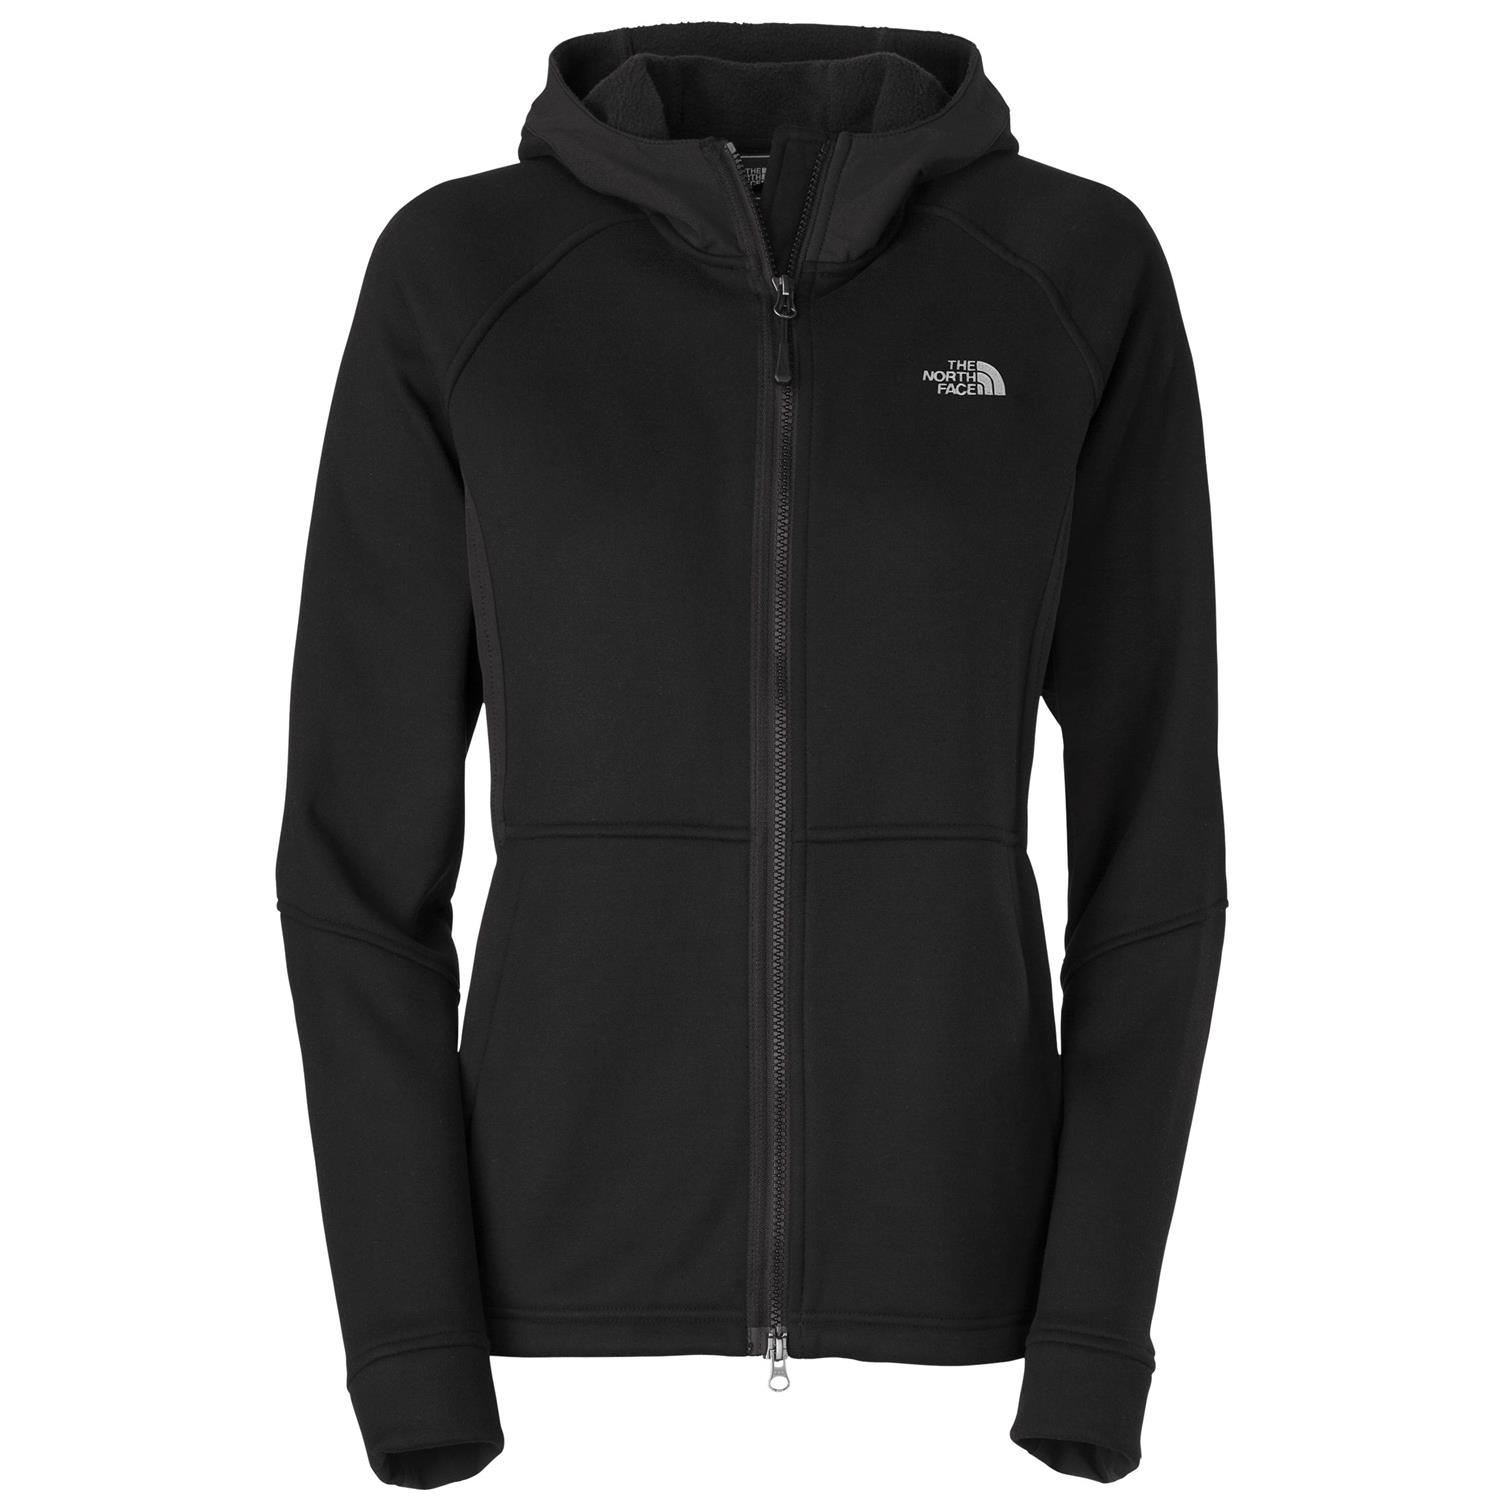 Women north face jackets on clearance